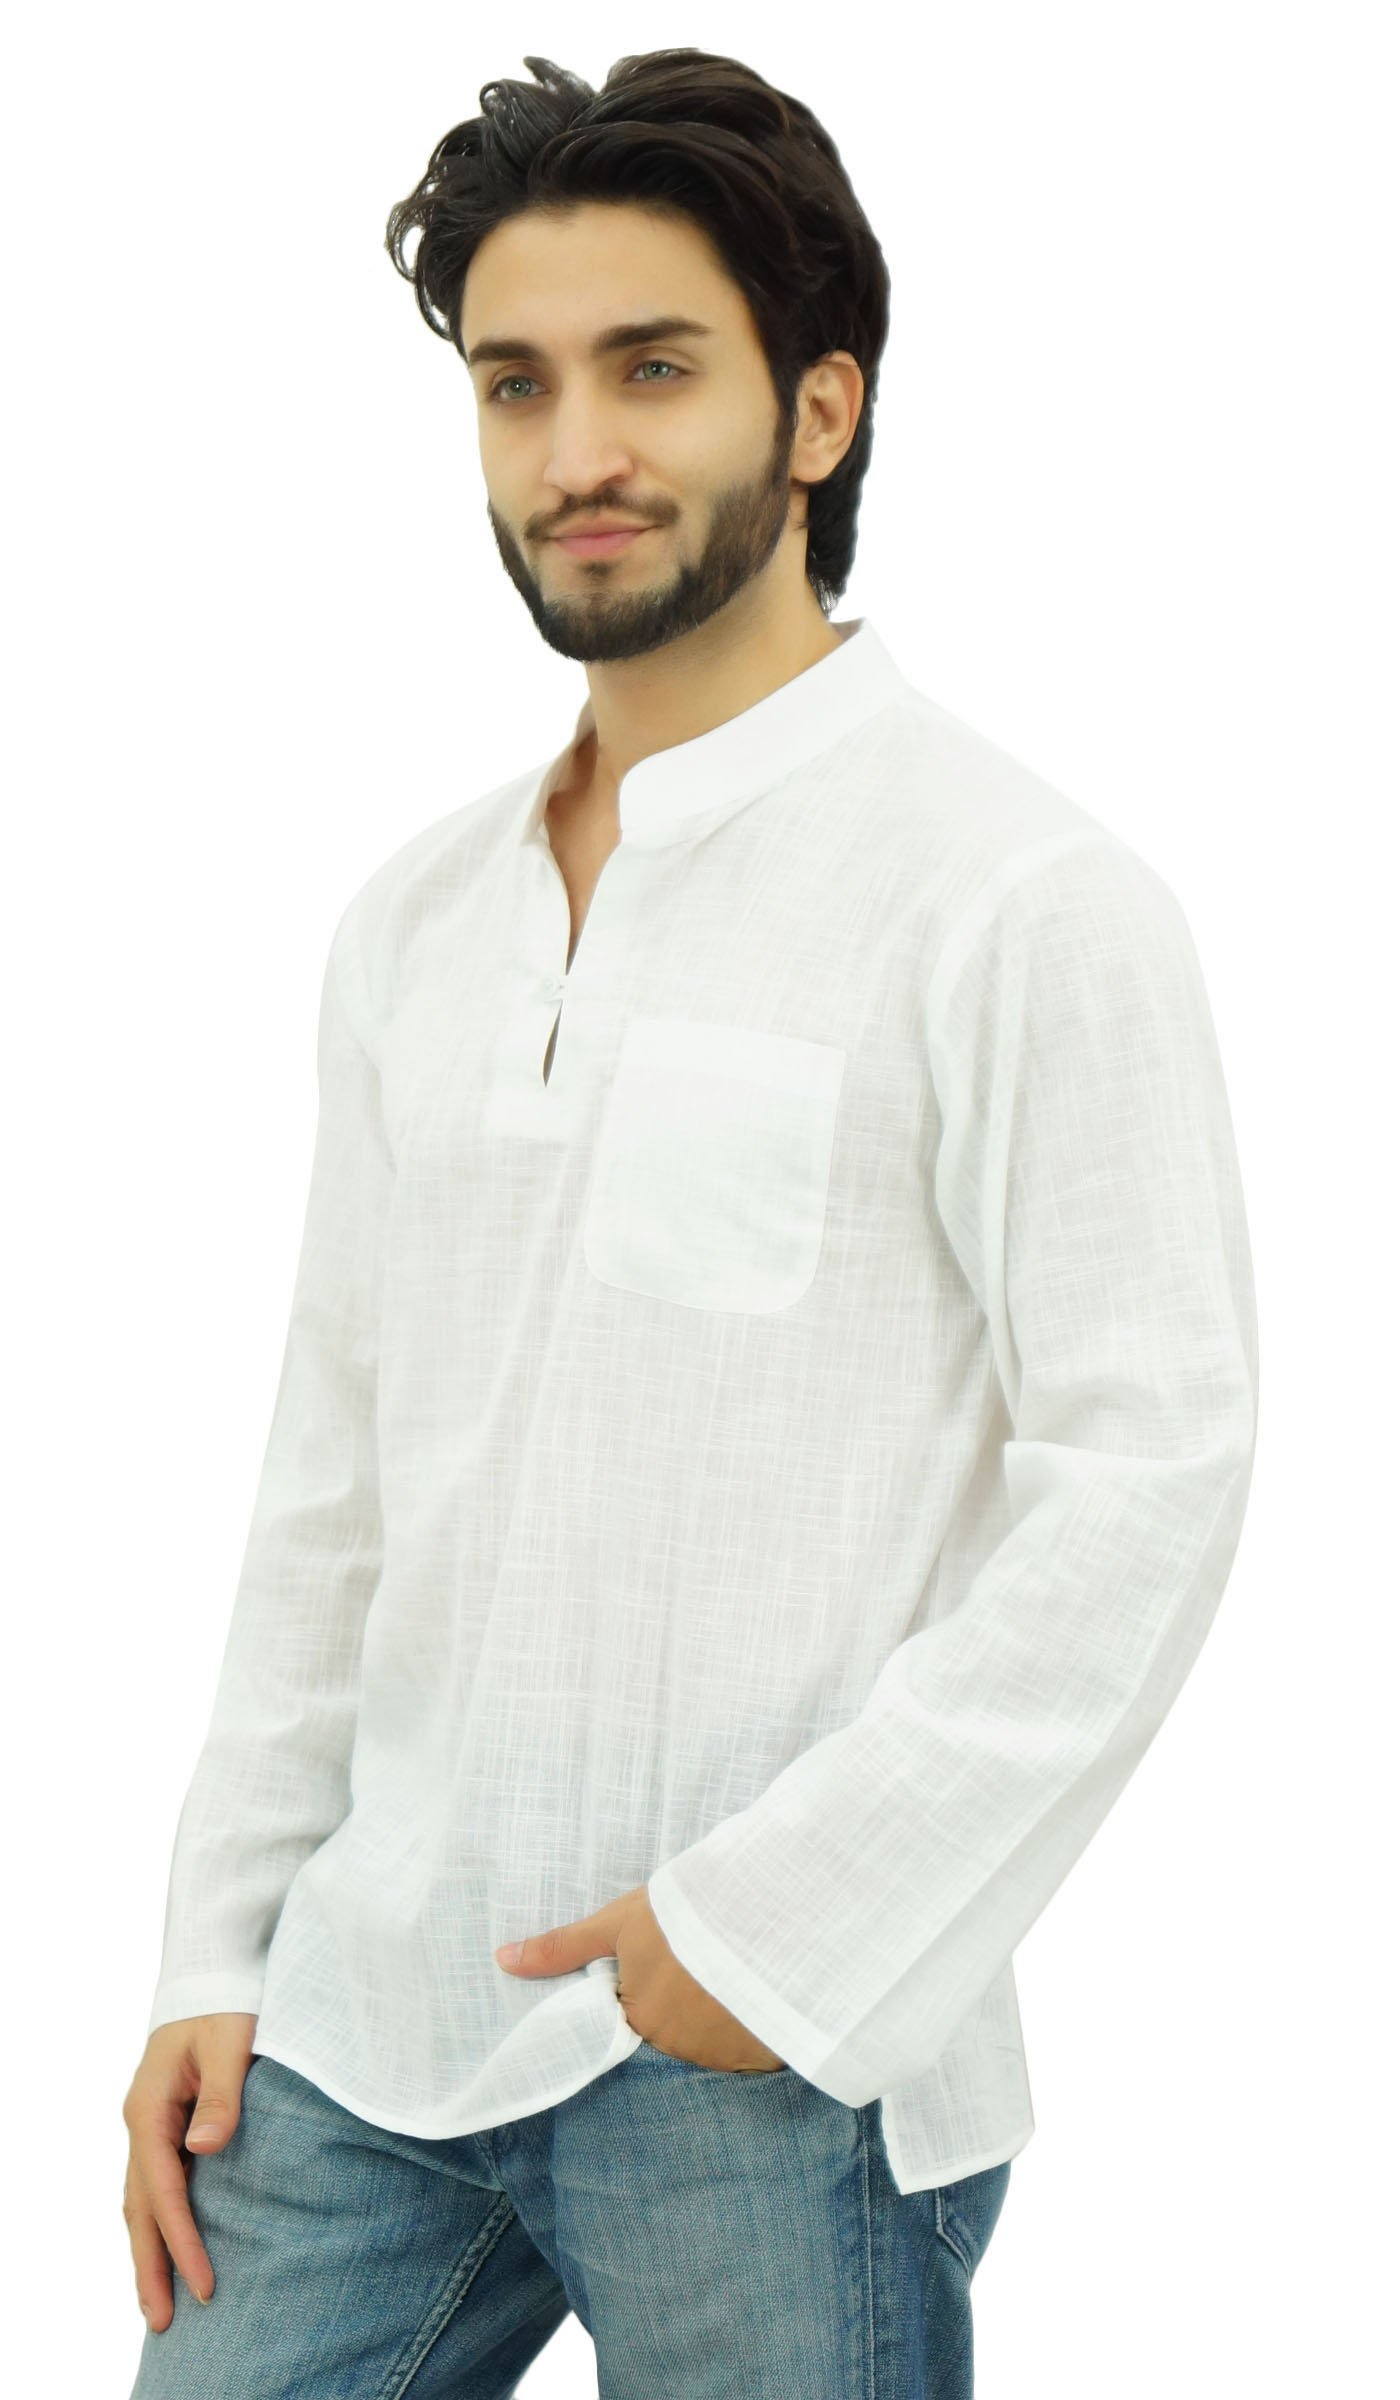 Atasi Men's Band Collar Short Kurta White Cotton Casual Tunic Shirt-Large by Atasi (Image #3)